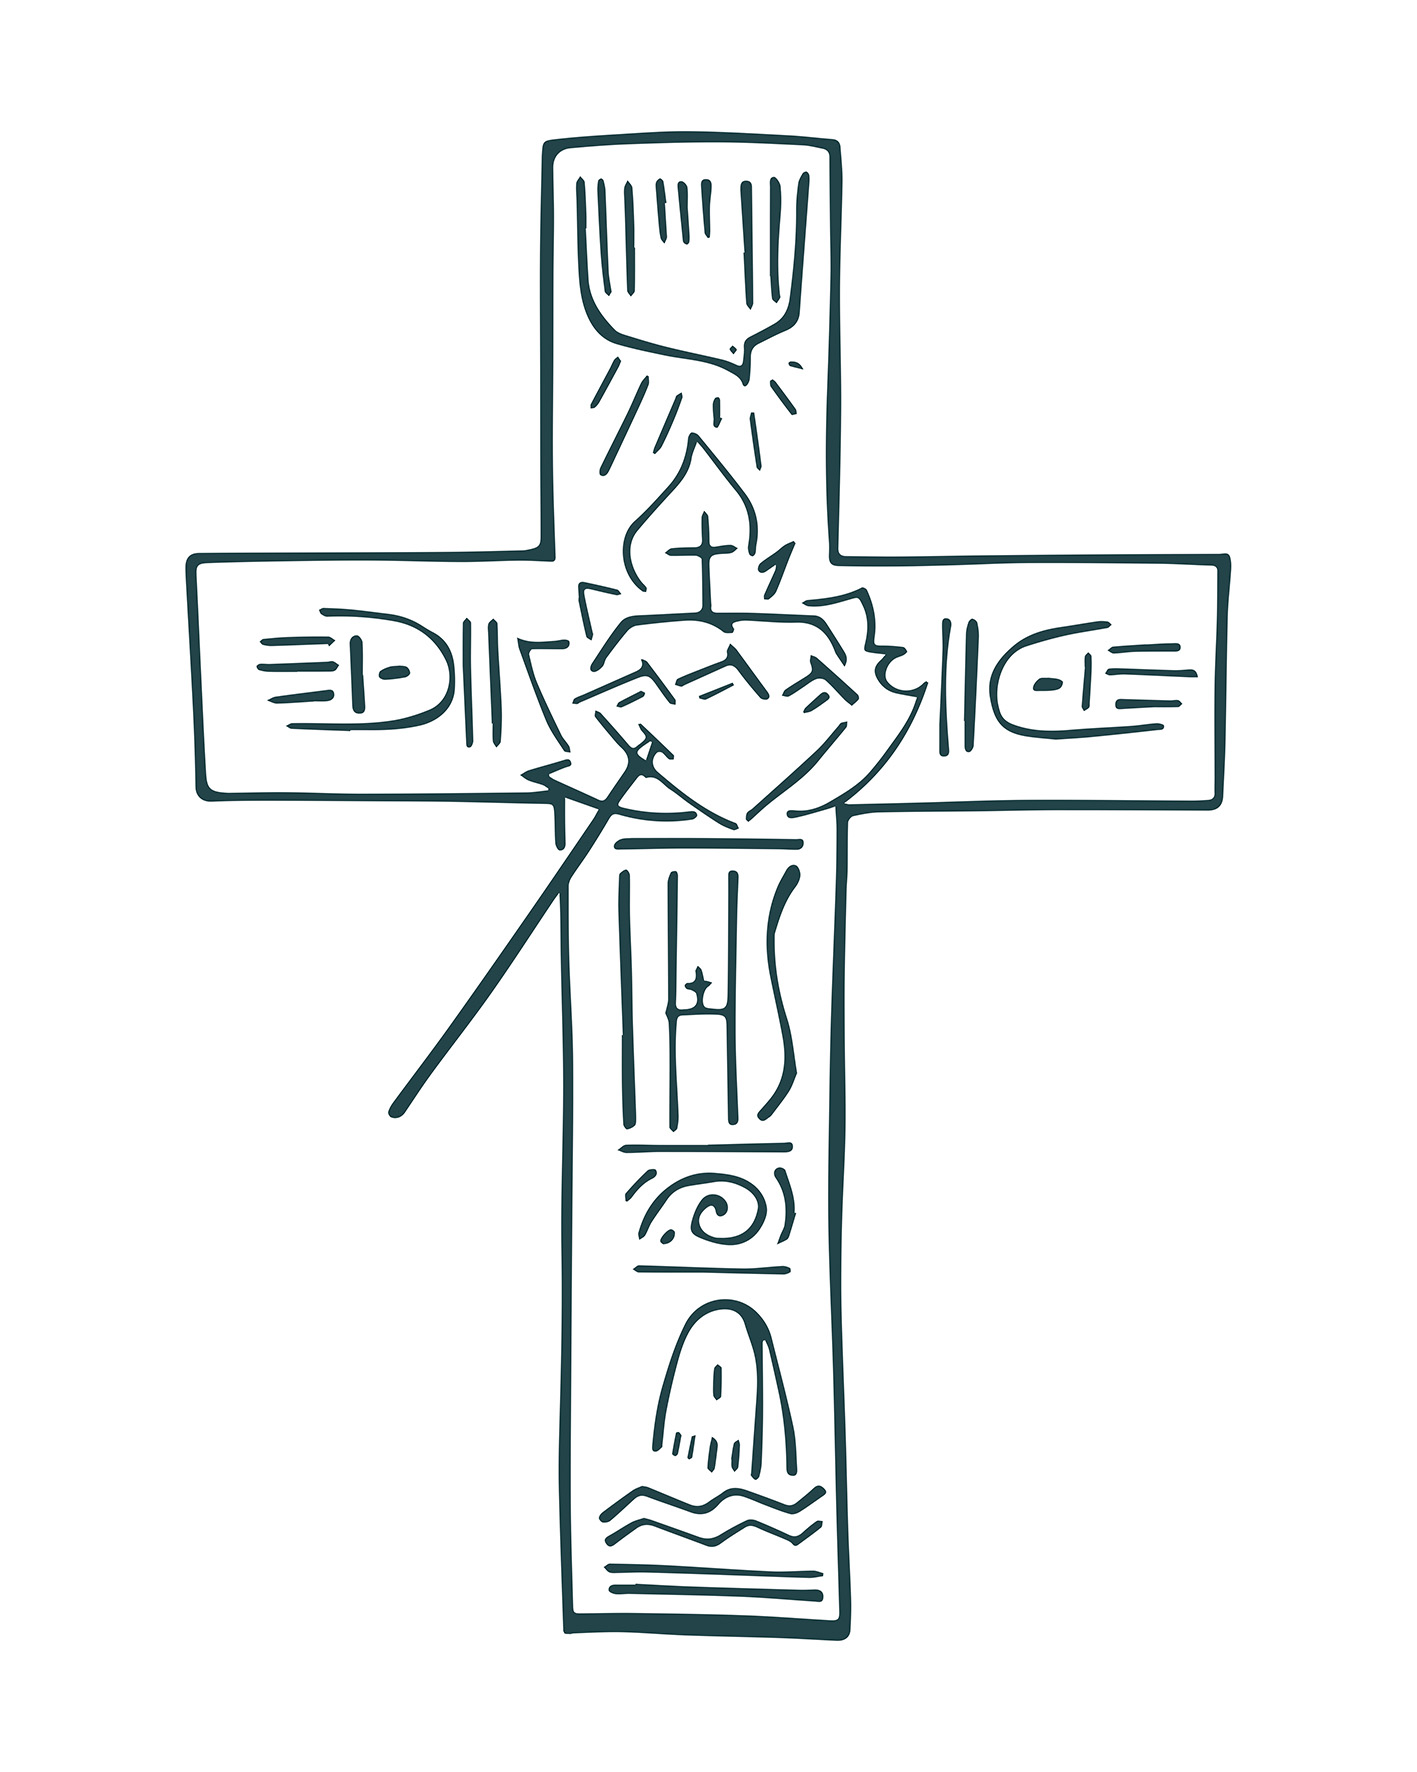 Cruz del Apostolado dibujo / Cross of the Apostolate drawing